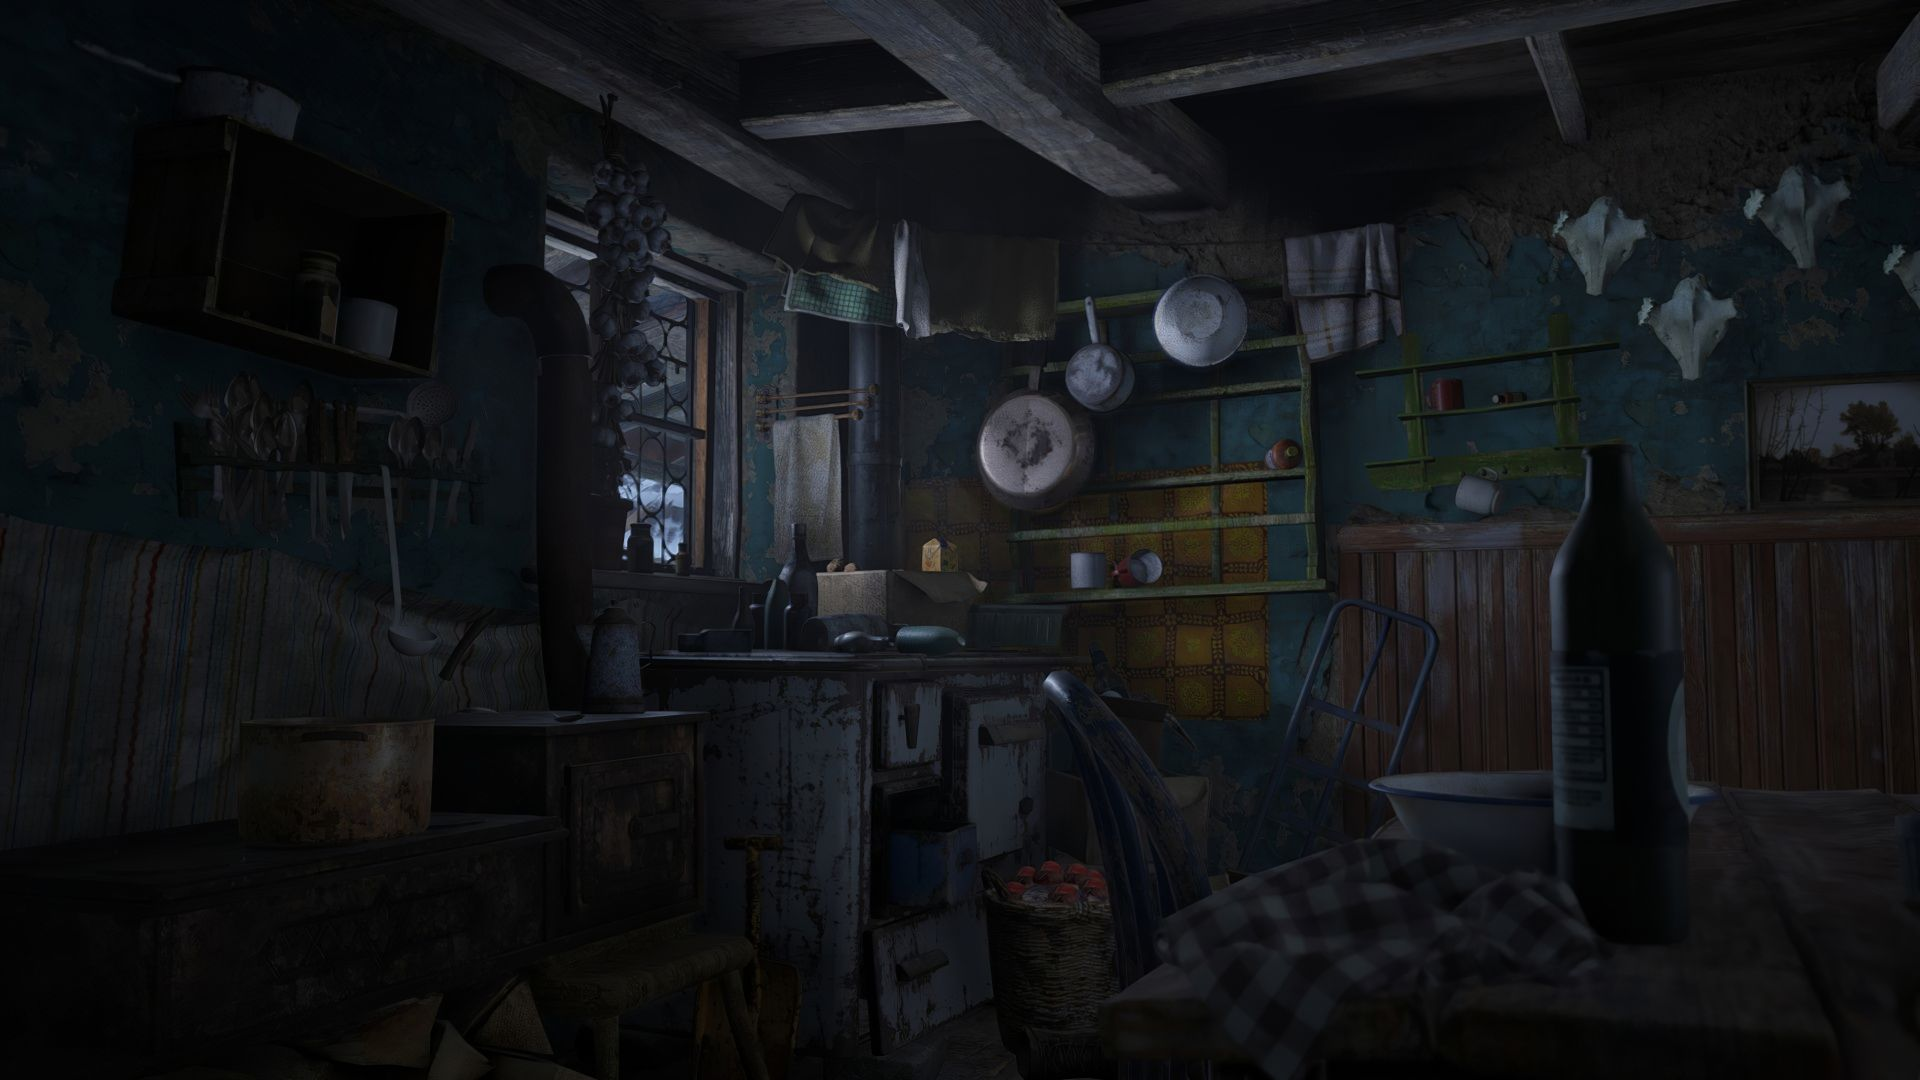 Resident Evil Village, screenshot, 4K, PlayStation 5, PS5 (horizontal)